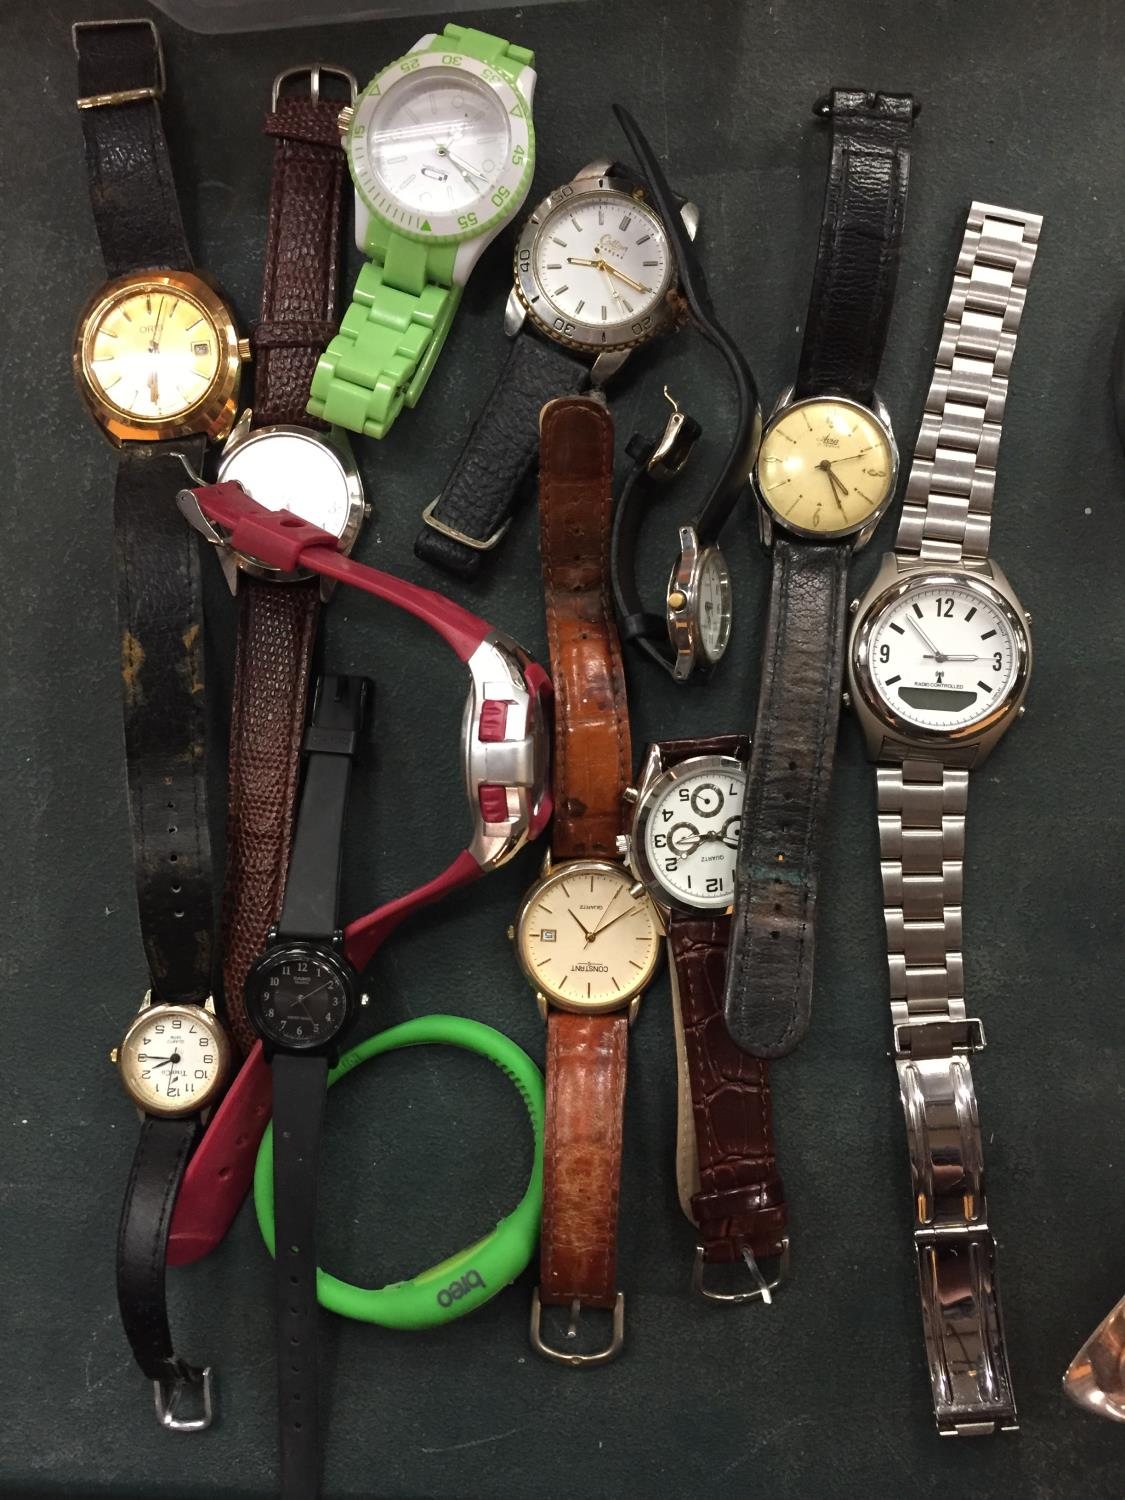 A COLLECTION OF VARIOUS FASHION WATCHES